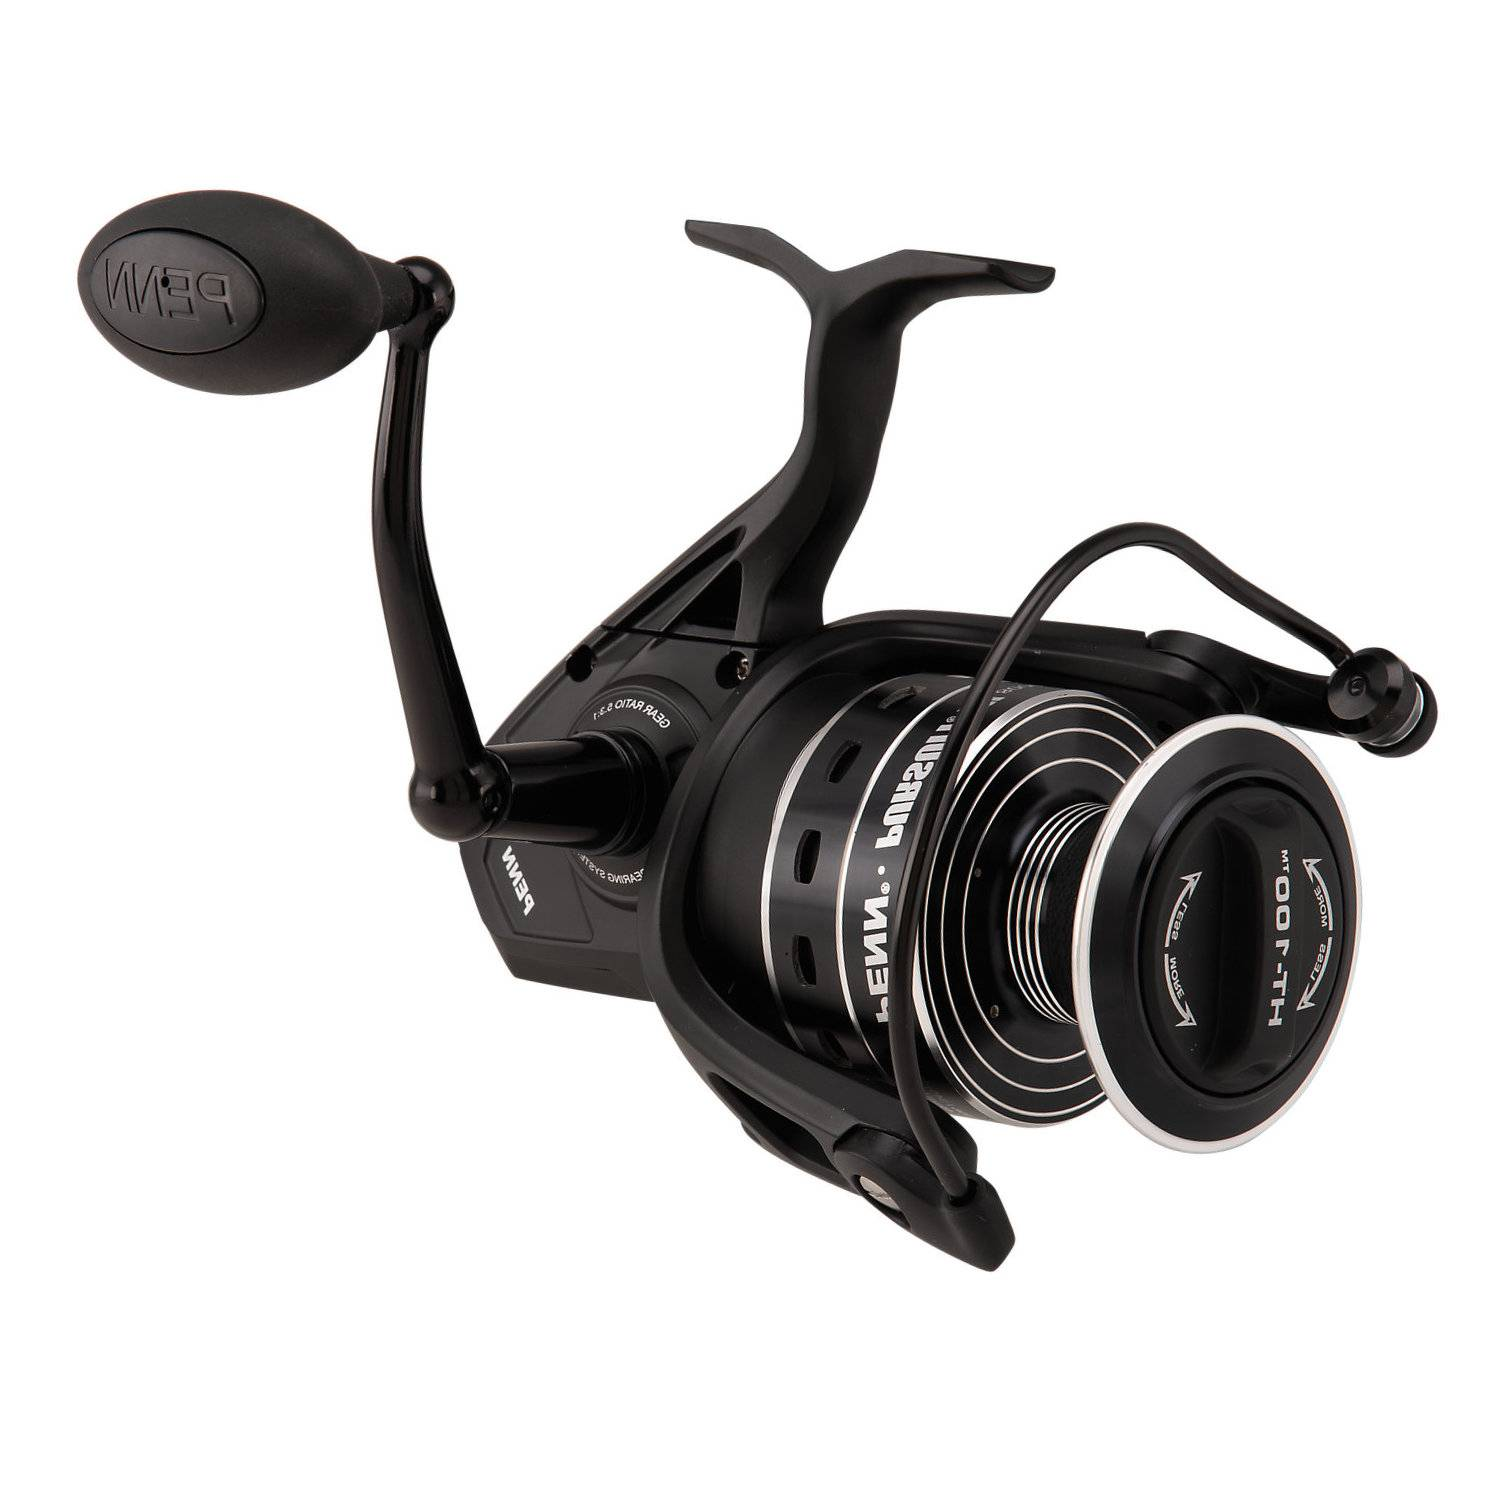 Top 16 cheap spinning reels in 2019